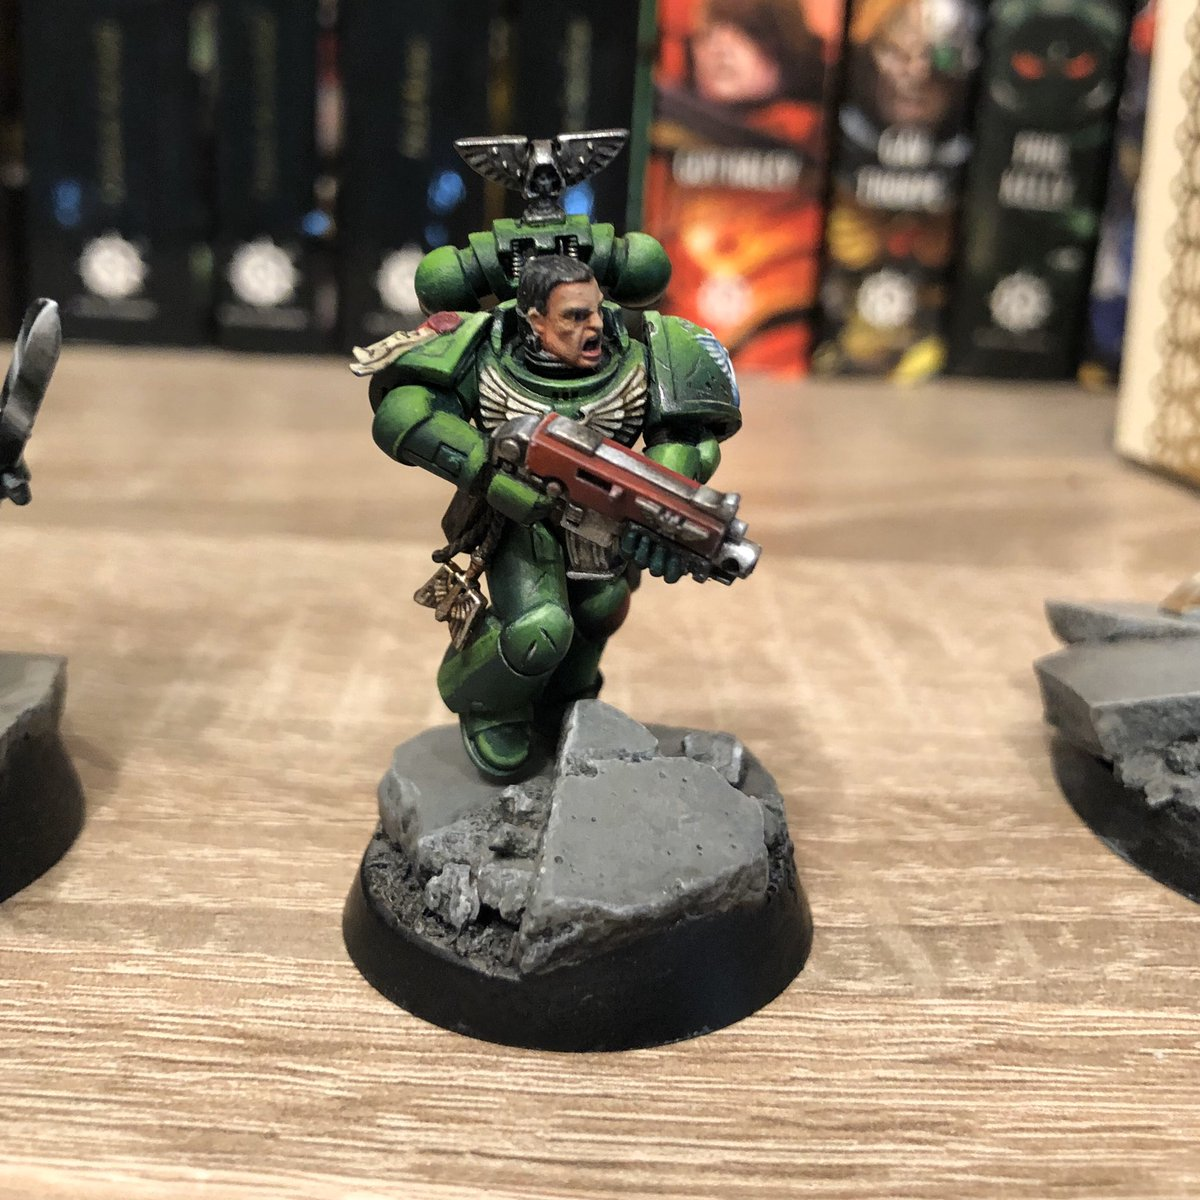 Just a small update. Painted the boltgun casing and basecoated the arms. First rough highlights are on there too. #miniaturepainting #WH40k #Warhammer40000 #paintingwarhammer #spacemarines #darkangels #spacemarineheroes #hobbyisten500 #wepaintminis #warmongers #brothergaiun